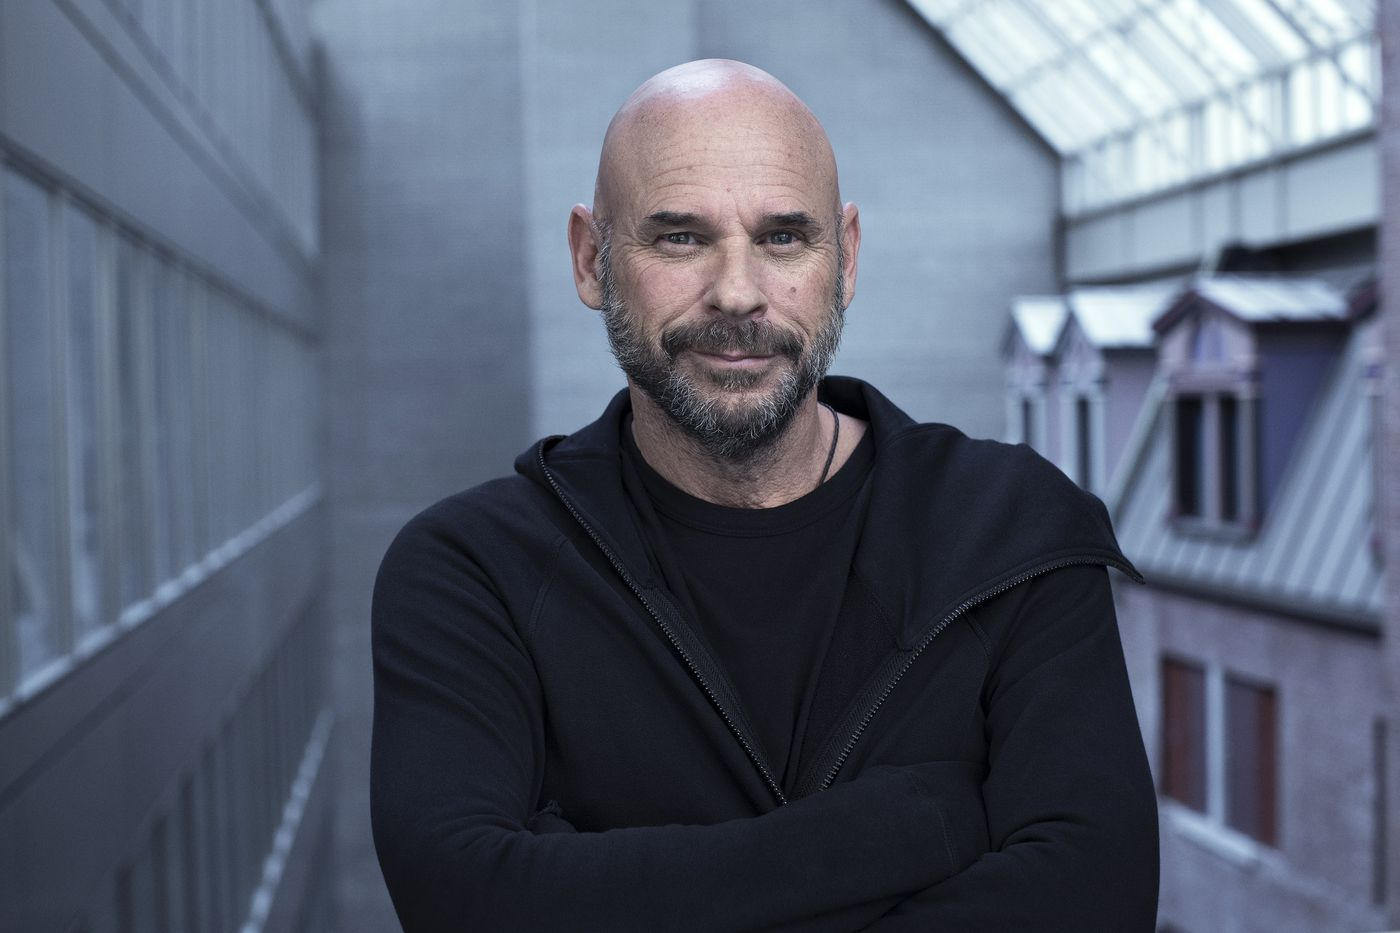 As anticipation builds for the 'Art for One Drop' charity auction on 21 September, we sat down with the organization's founder—who also happens to be the founder of Cirque du Soleil—to discuss the impact of art, the importance of water and his philosophy as a collector.